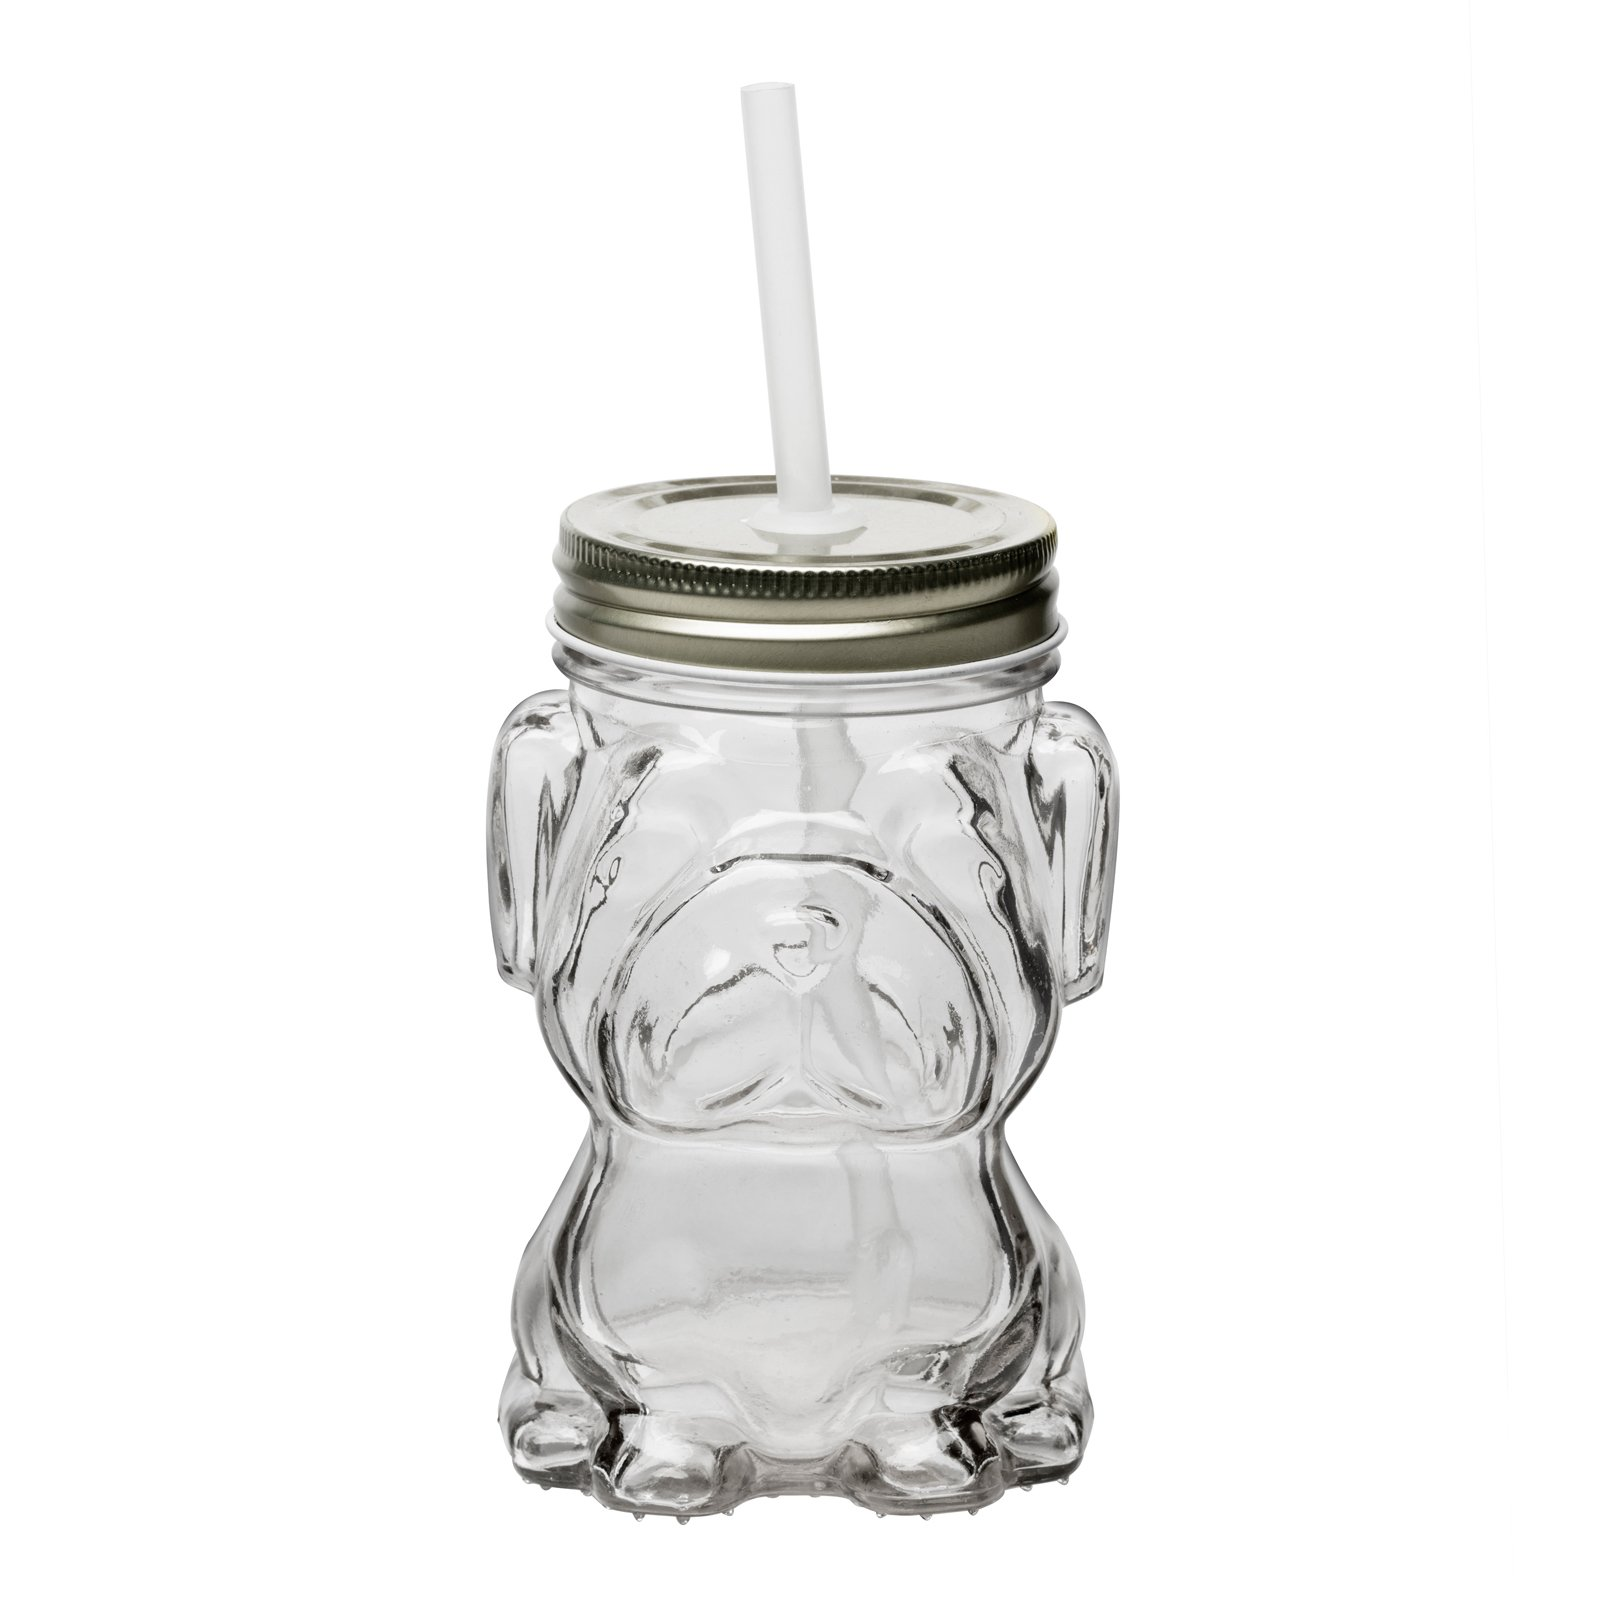 Amici Home, 7CM204SS4R Mad Dog Mason Jar Silver Twist Top Lid, Raised Textured Glass, 14 Ounce Capacity, Set of 4